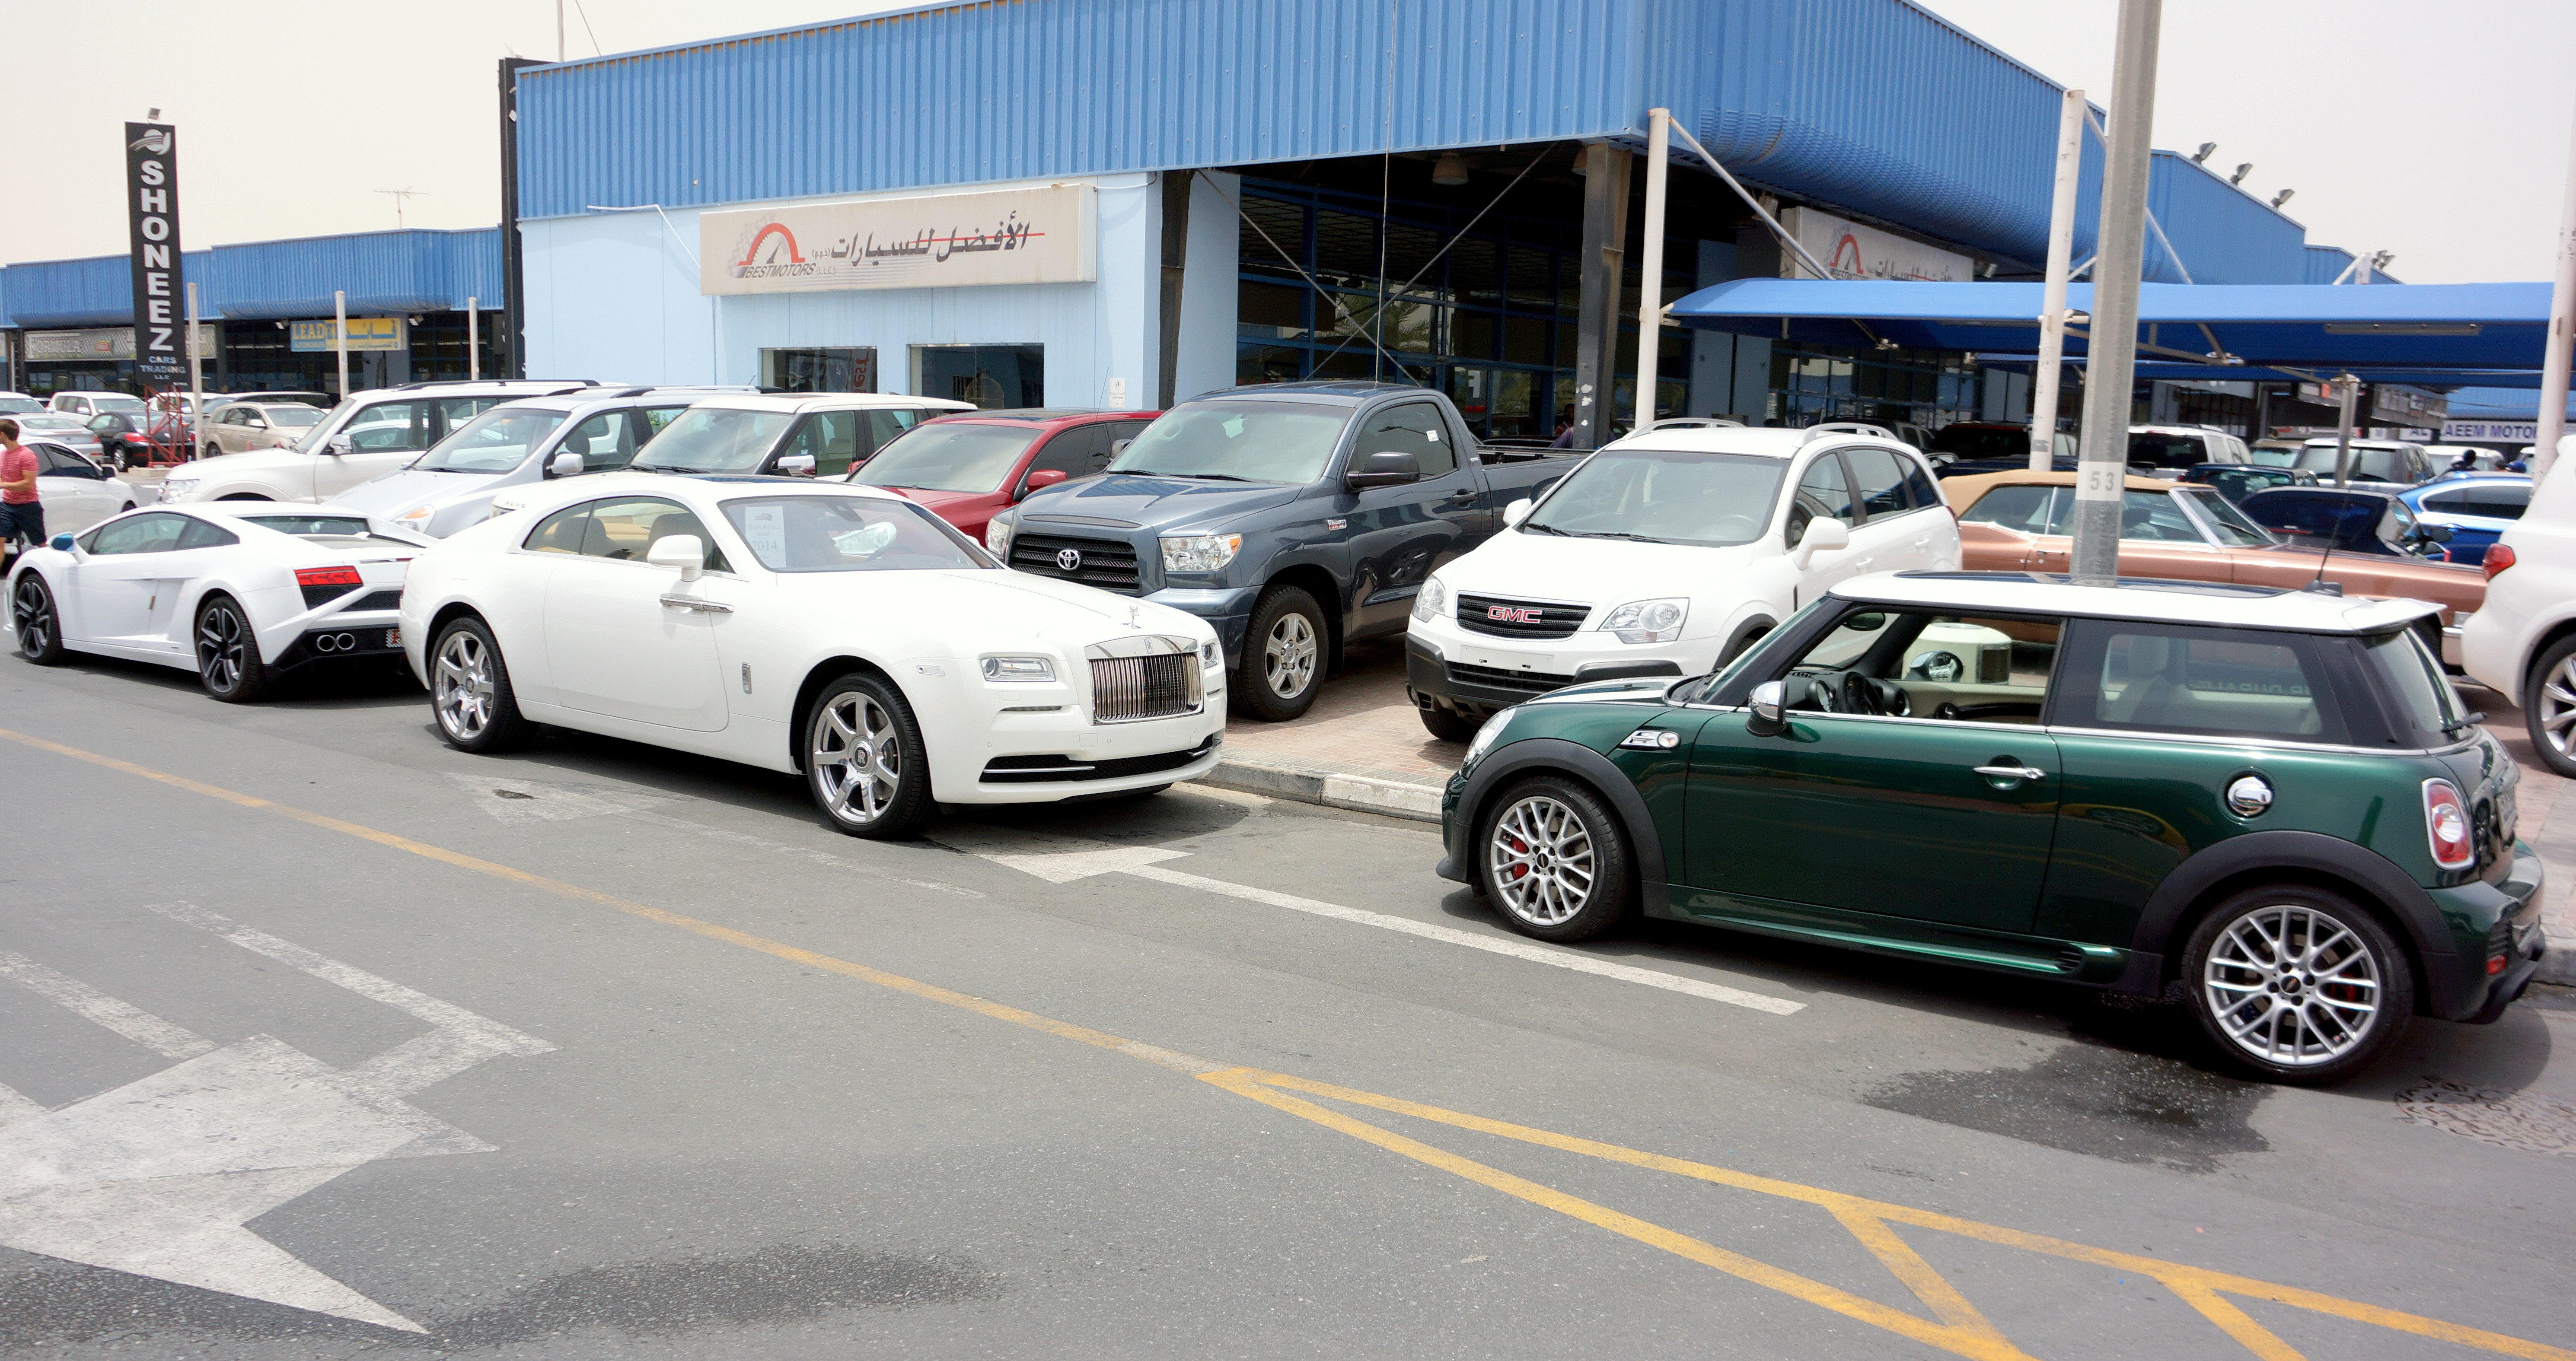 Where to Find Used Cars Awesome Used Car Sales Near Me